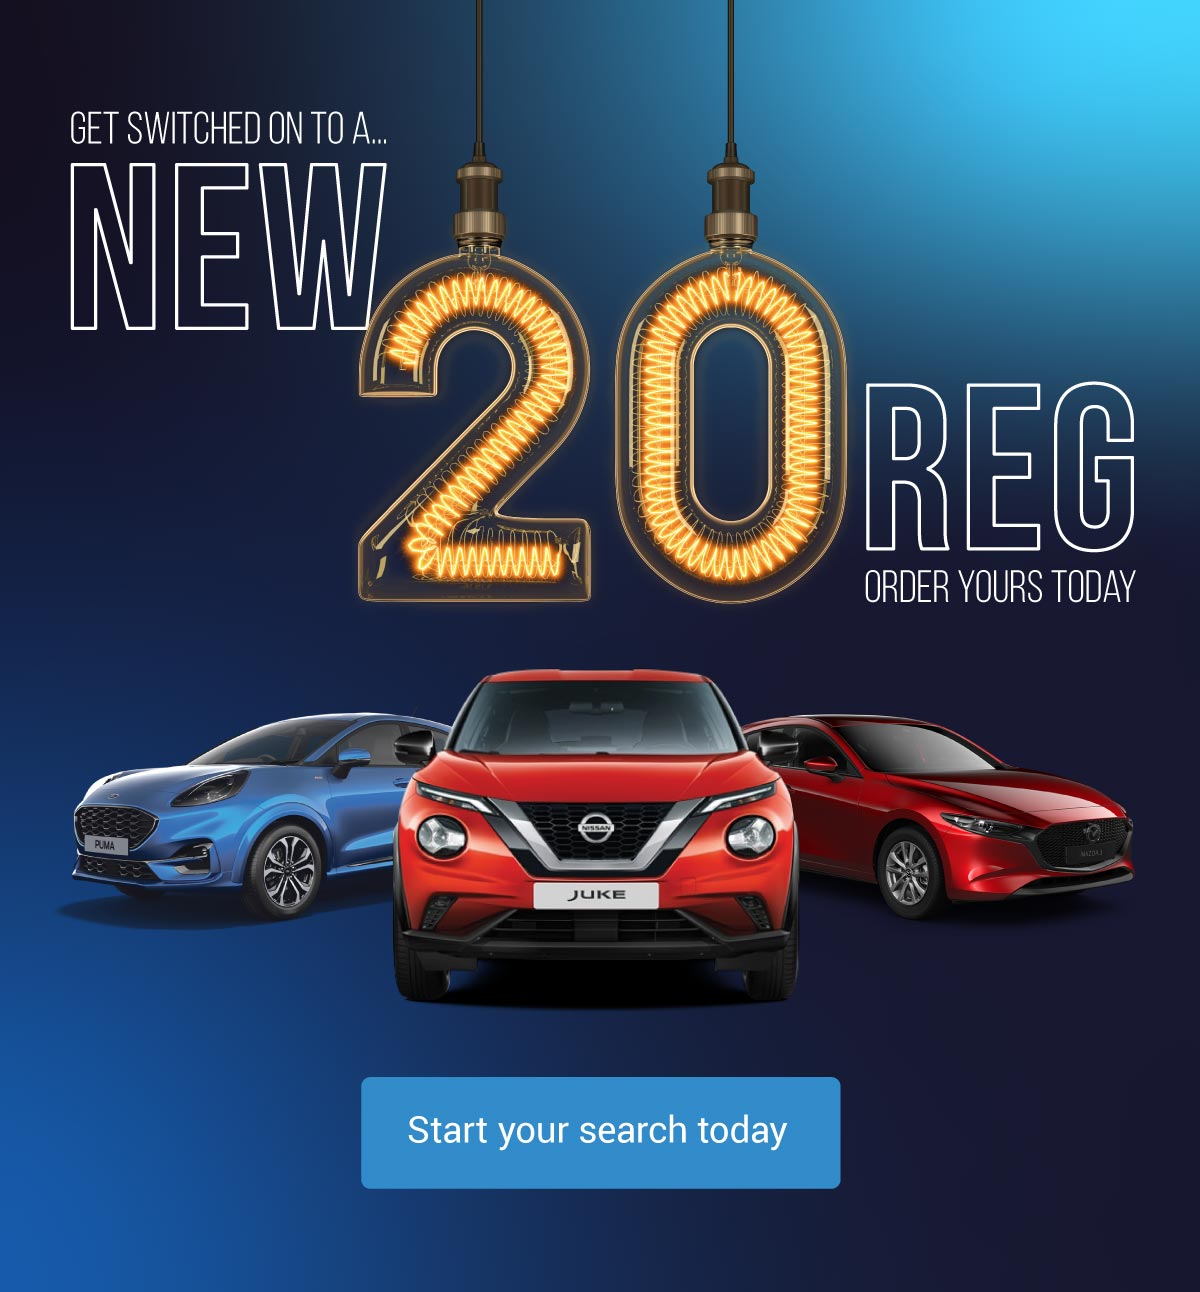 20 Reg New Car Banner - MM